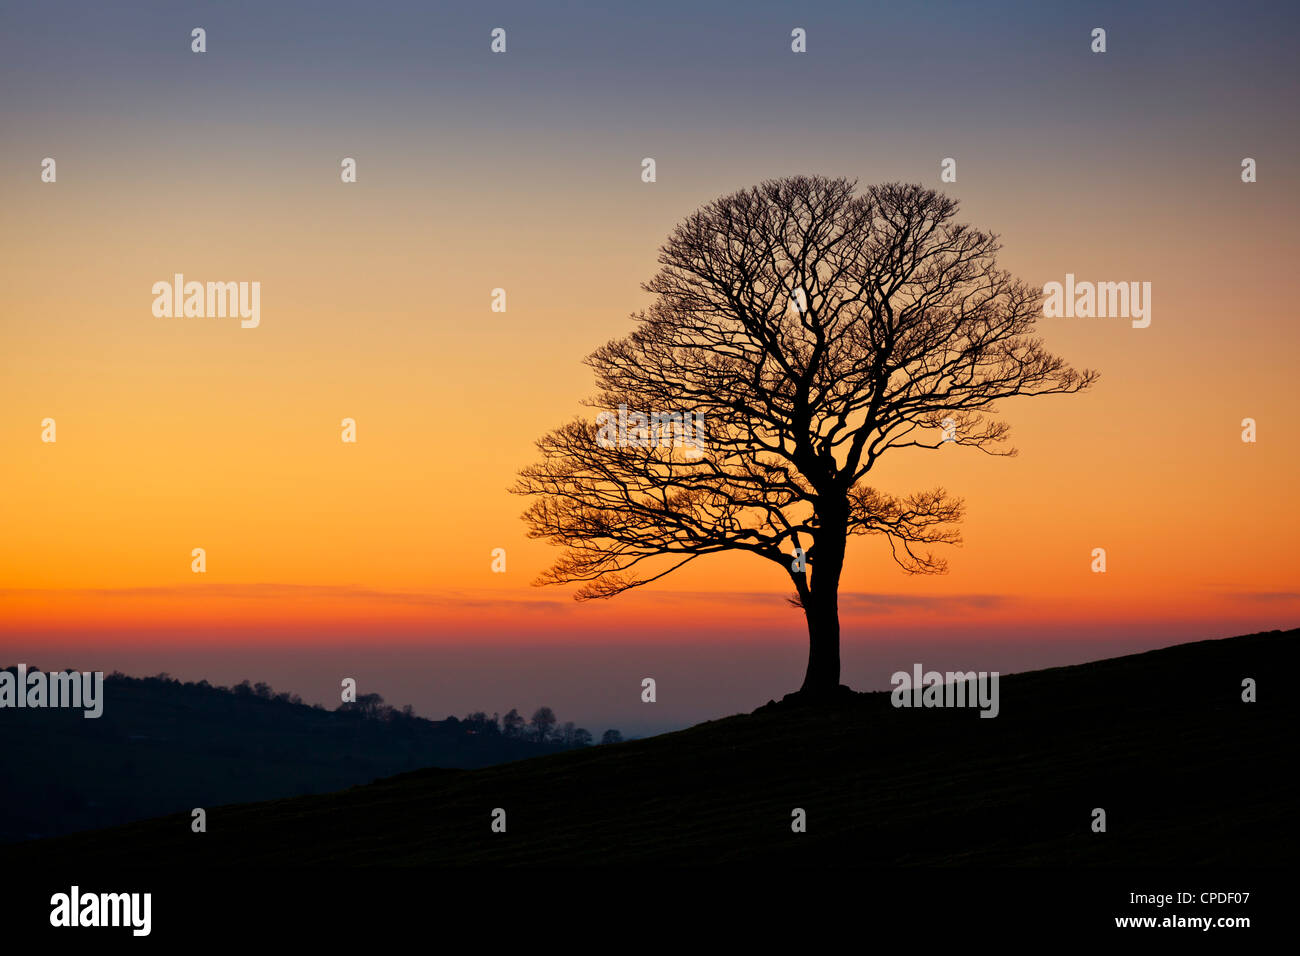 Lone tree empty of leaves in winter at sunset in the Roaches near Leek, Staffordshire, England, United Kingdom, - Stock Image